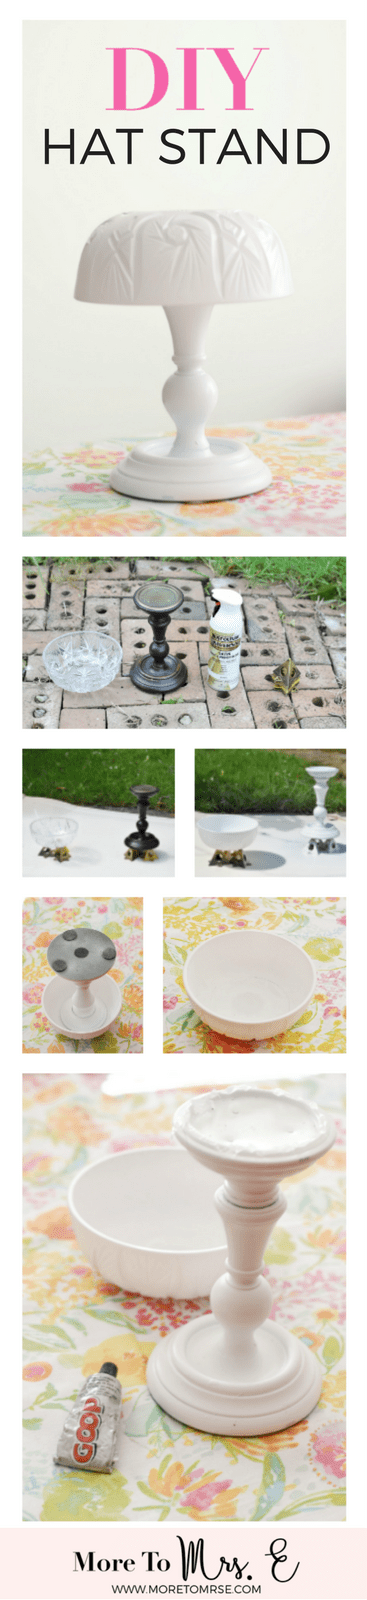 Make DIY Hat Stand_Reuse Candlestick_Spray Paint Project